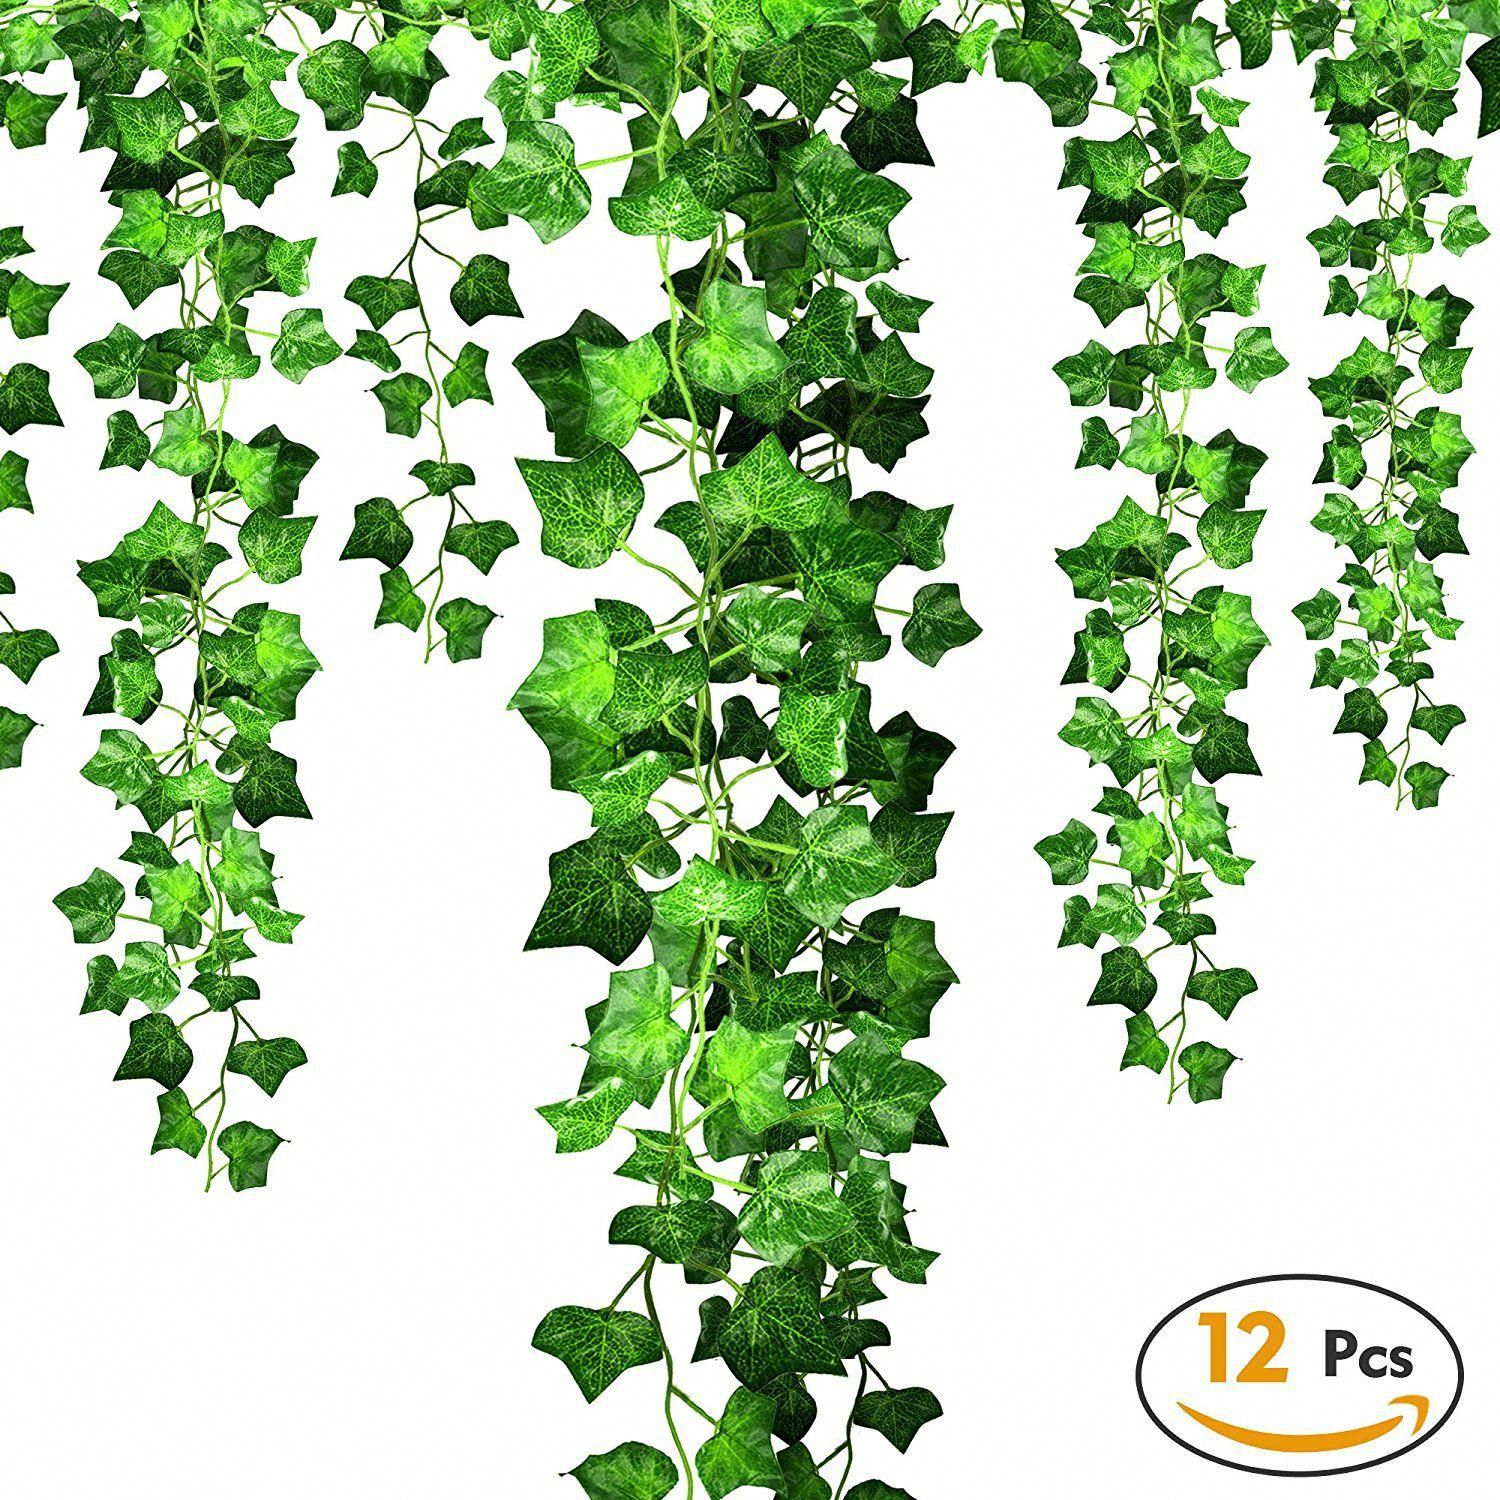 Artificial Decorations Temperate Artificial Maple Leaves Ivy Vines Simulation Plants Maple Rattan Garland Fences Windows Wall Stairway Hanging Decoration Party Non-Ironing Home & Garden